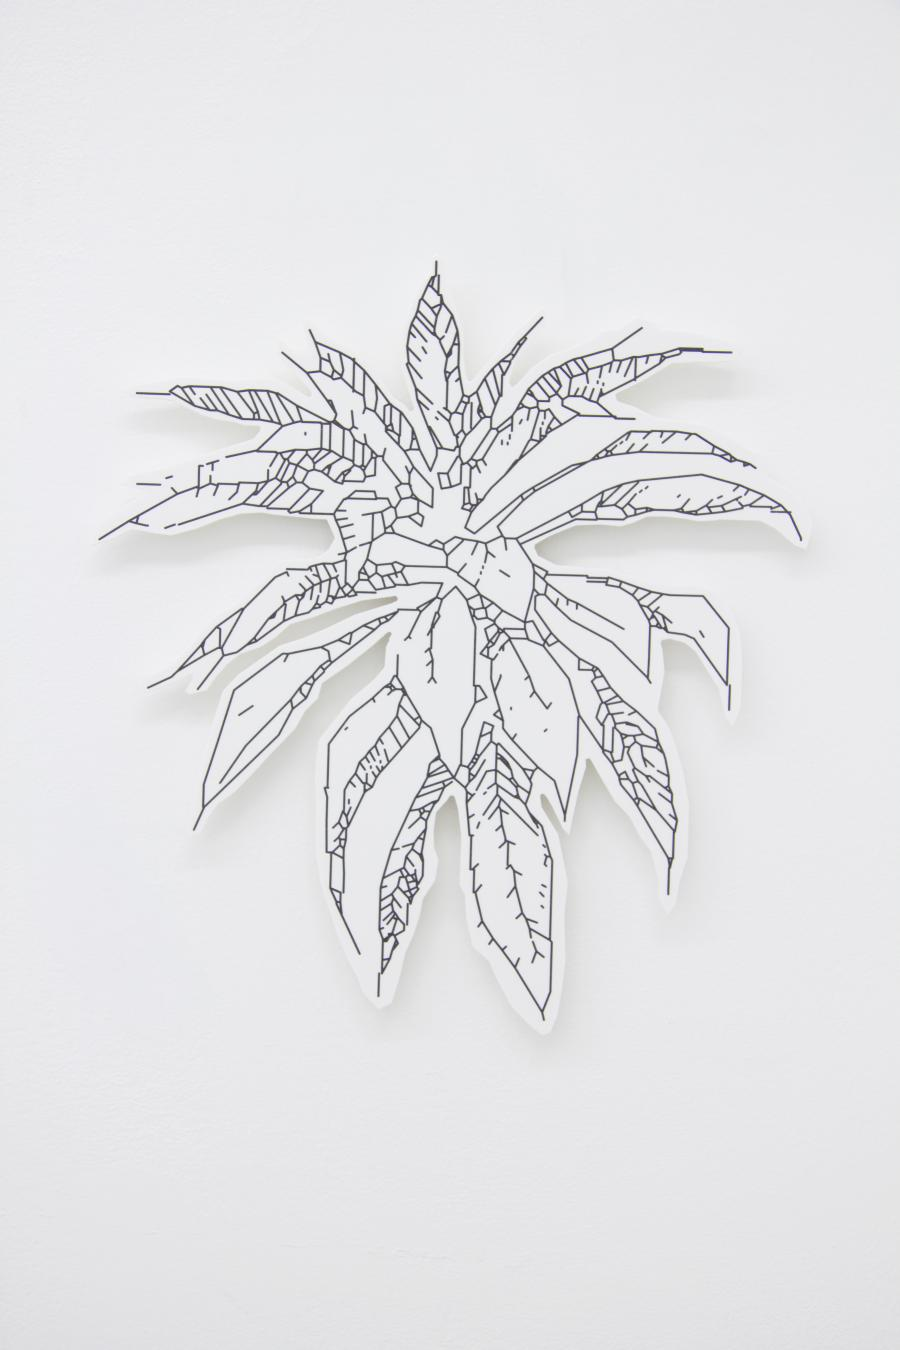 Richard Nikl, Plant 1:1, UV-print on PVC, 39 x 42 cm, 2015